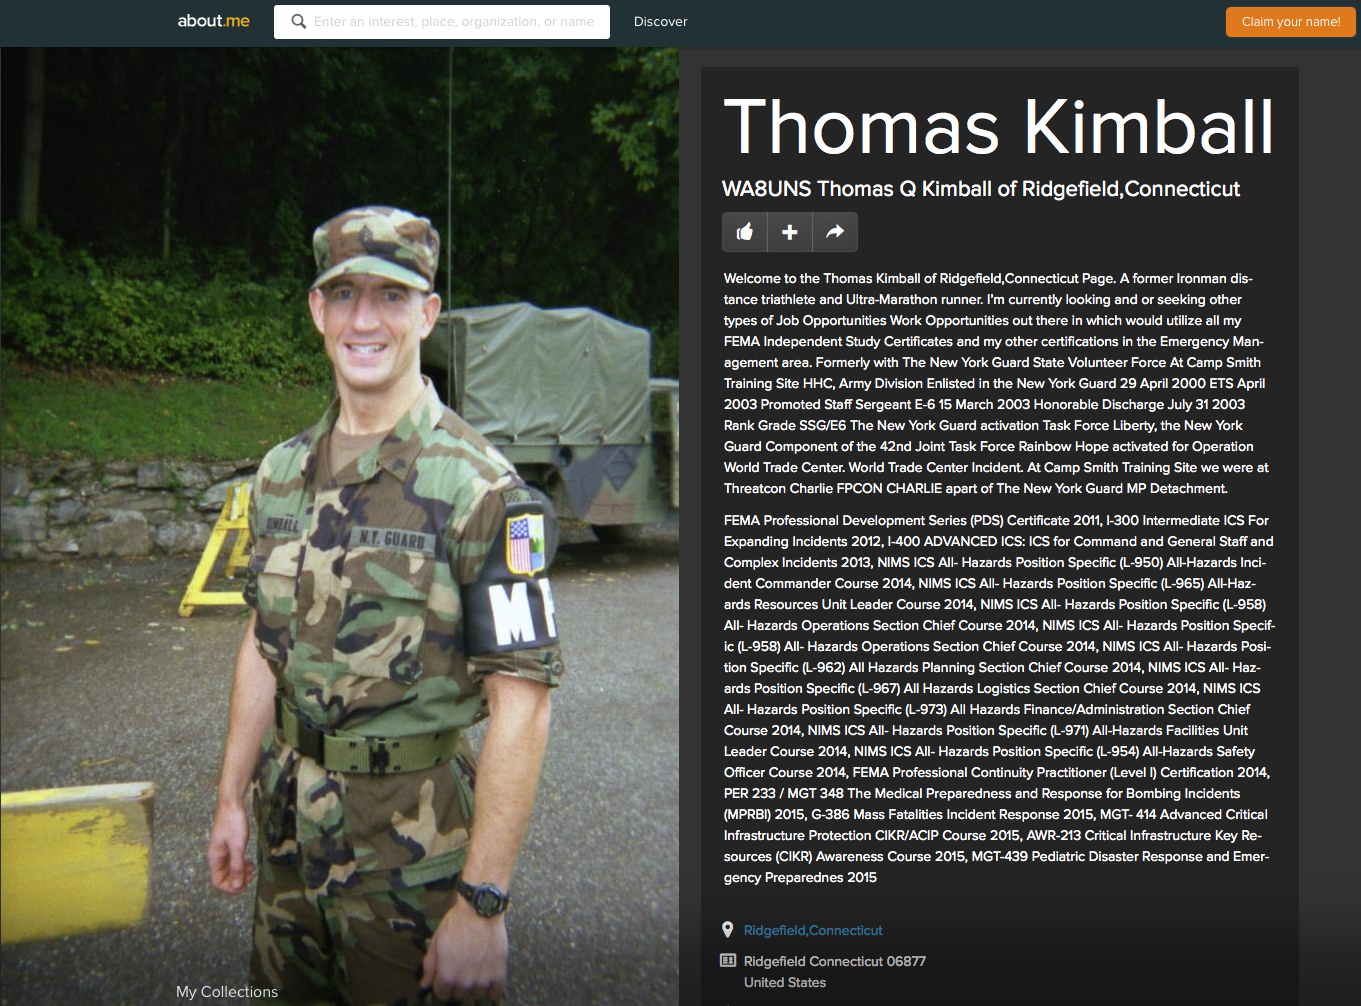 Please Click To See WA8UNS Thomas Q Kimball of Ridgefield,Connecticut About Me Page